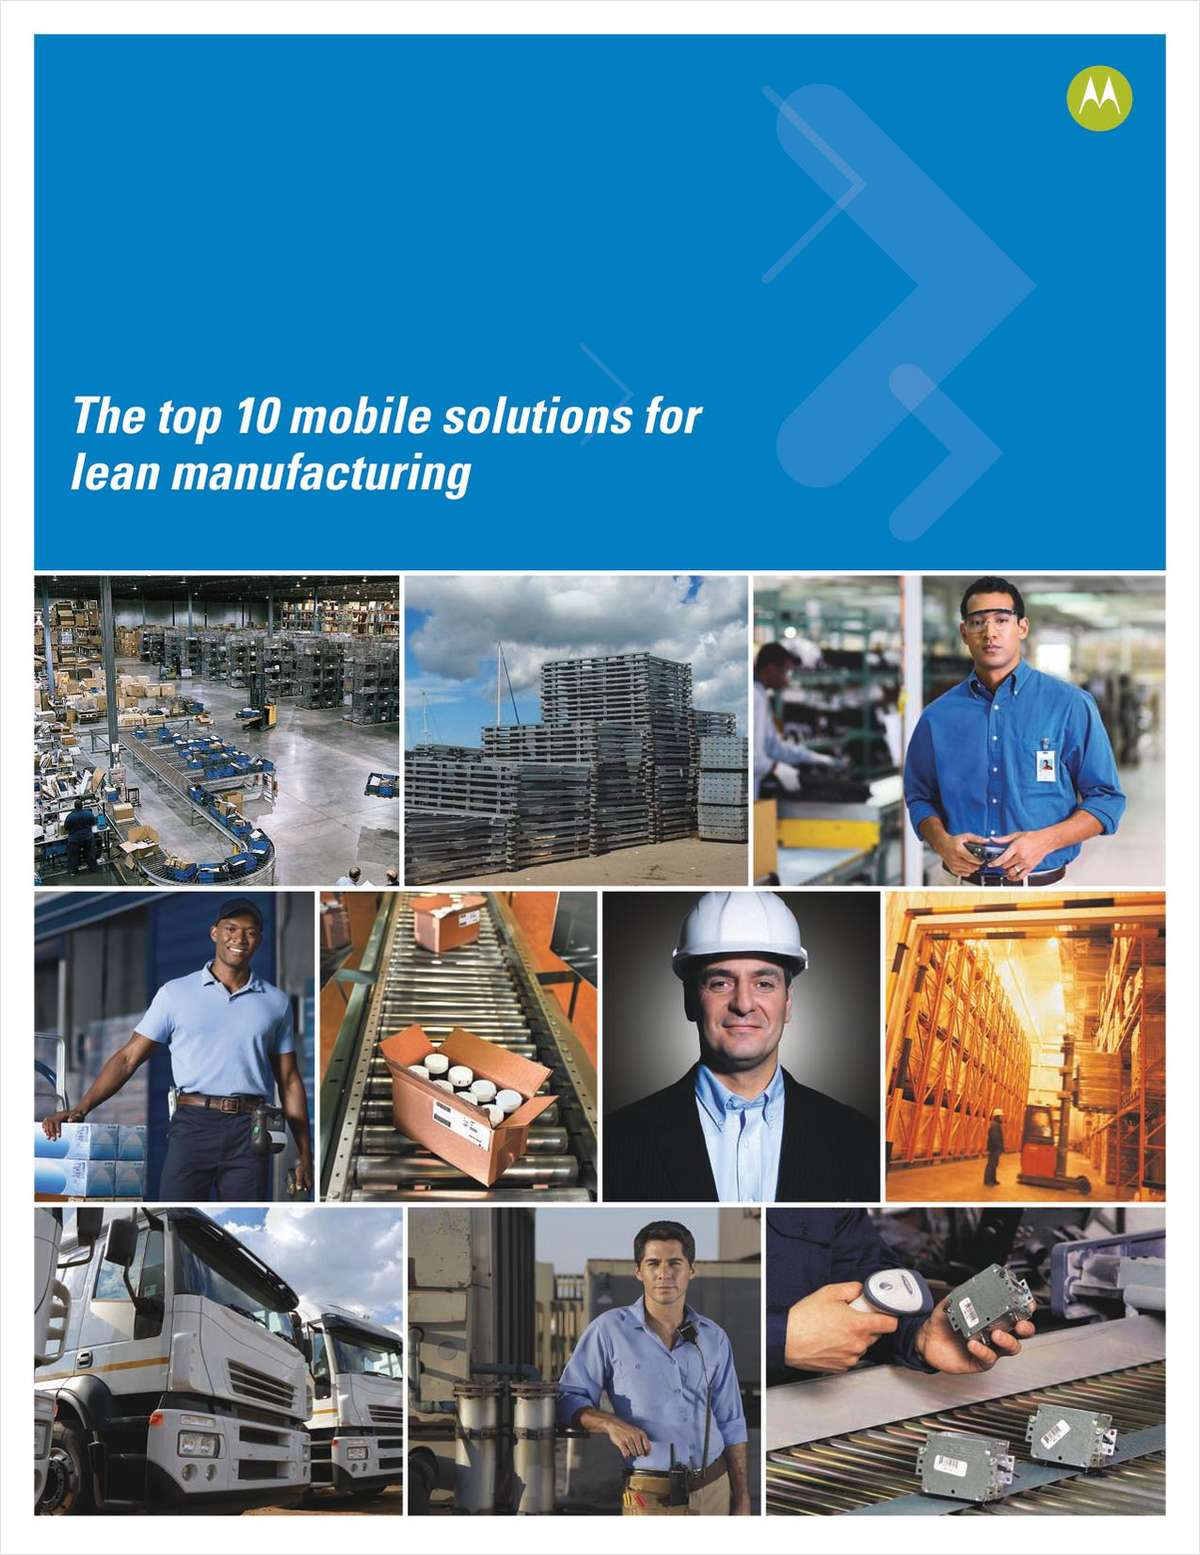 The Top 10 Mobile Solutions for Lean Manufacturing